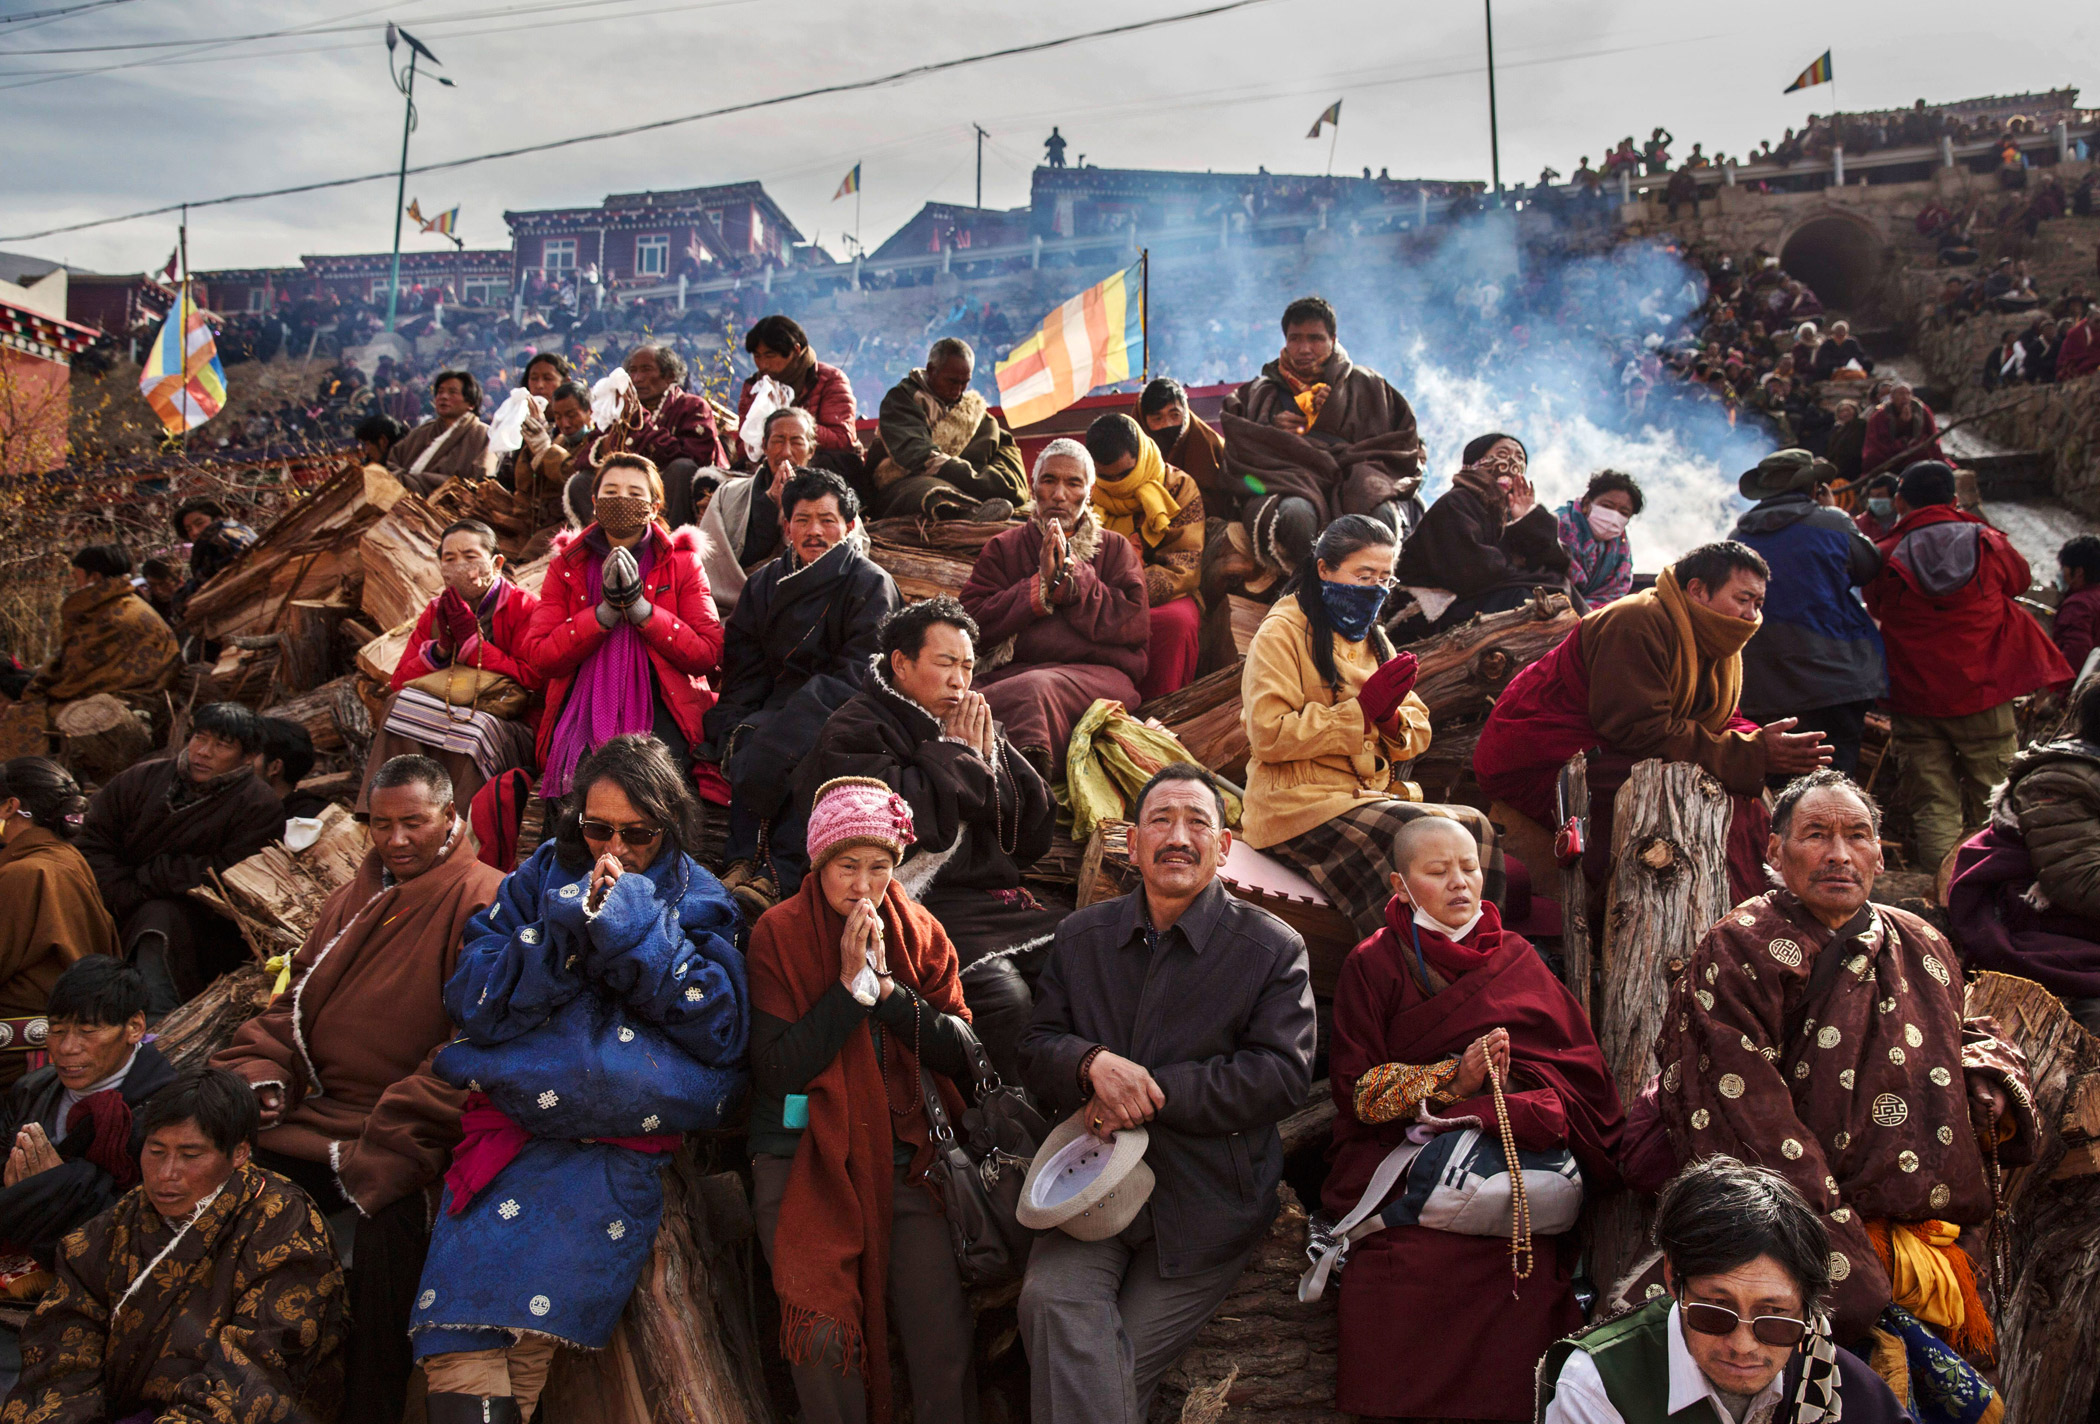 Tibetan Buddhists pray on a hillside at the Larung Wuming Buddhist Institute, which is popular for followers from all over the Tibetan areas and other parts of China.